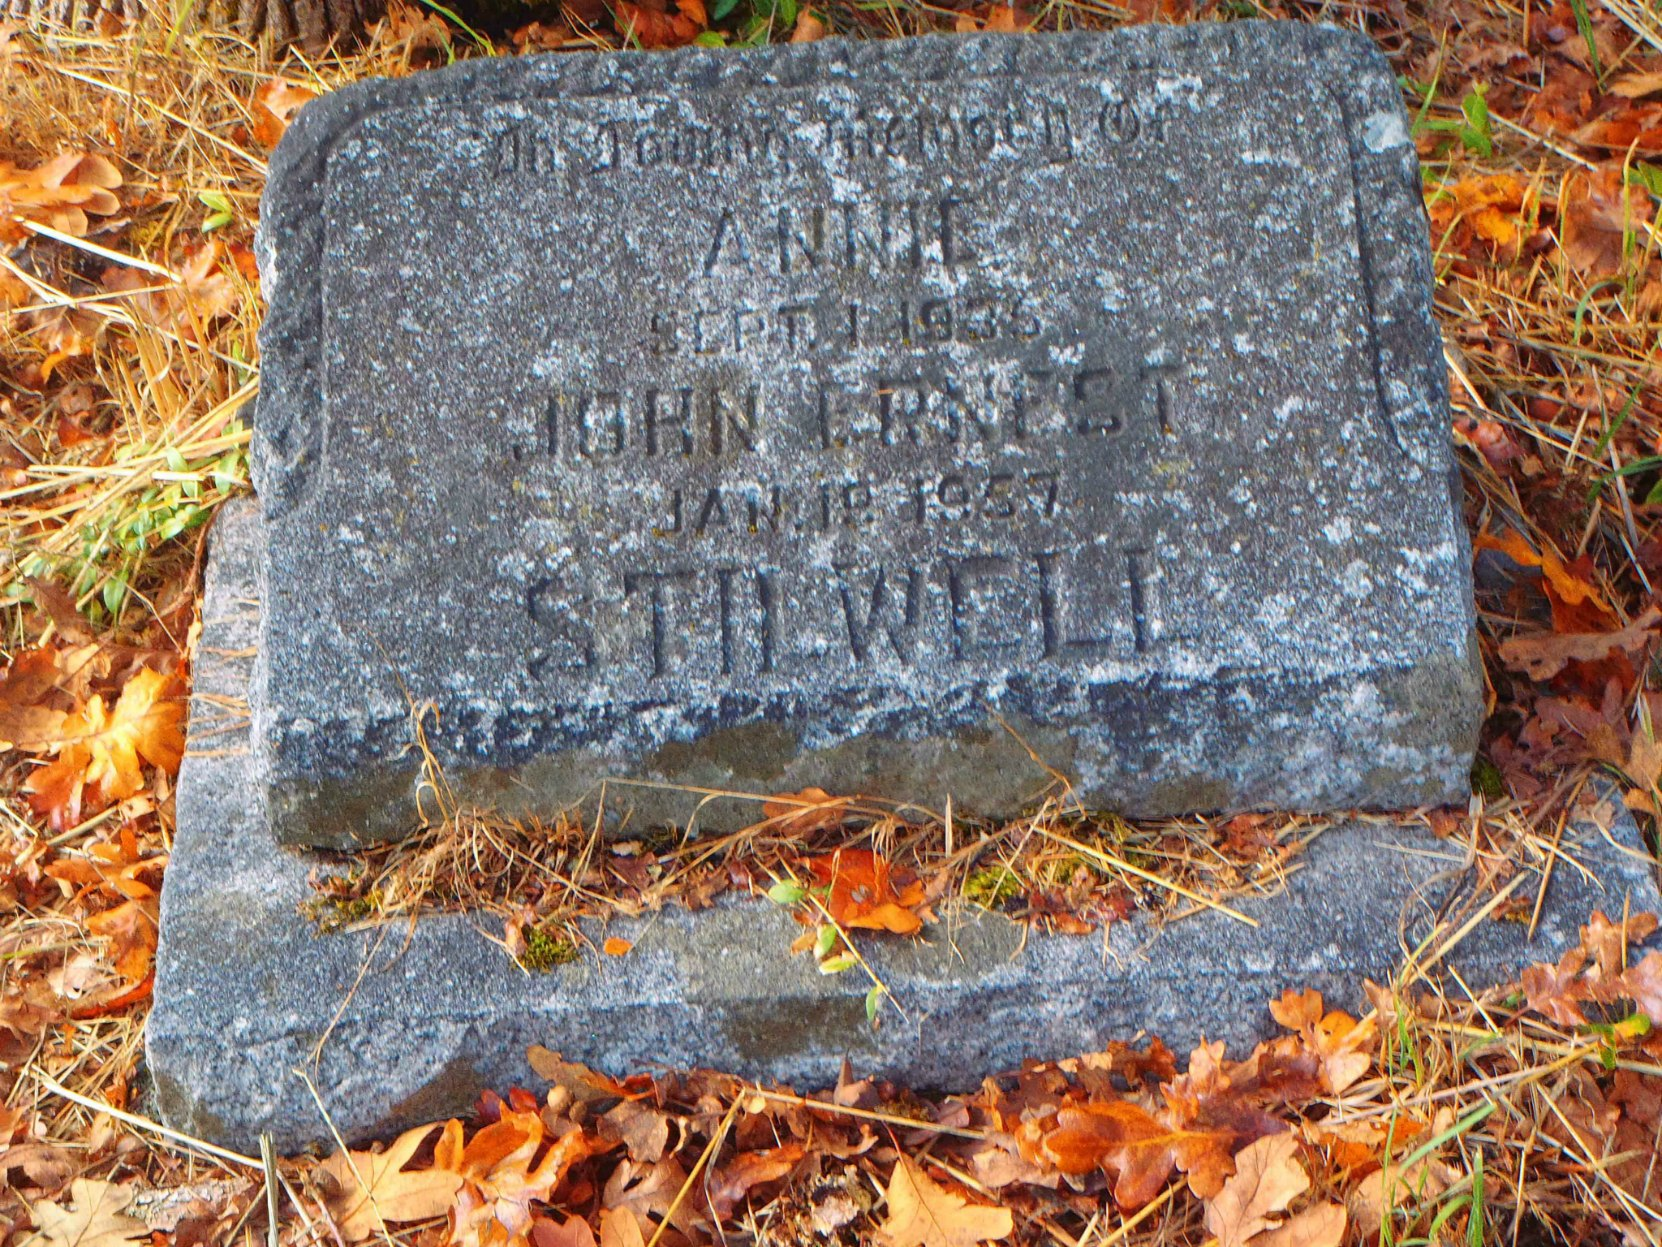 John Ernest Stilwell grave marker, St. Peter's Quamichan Anglican cemetery, North Cowichan